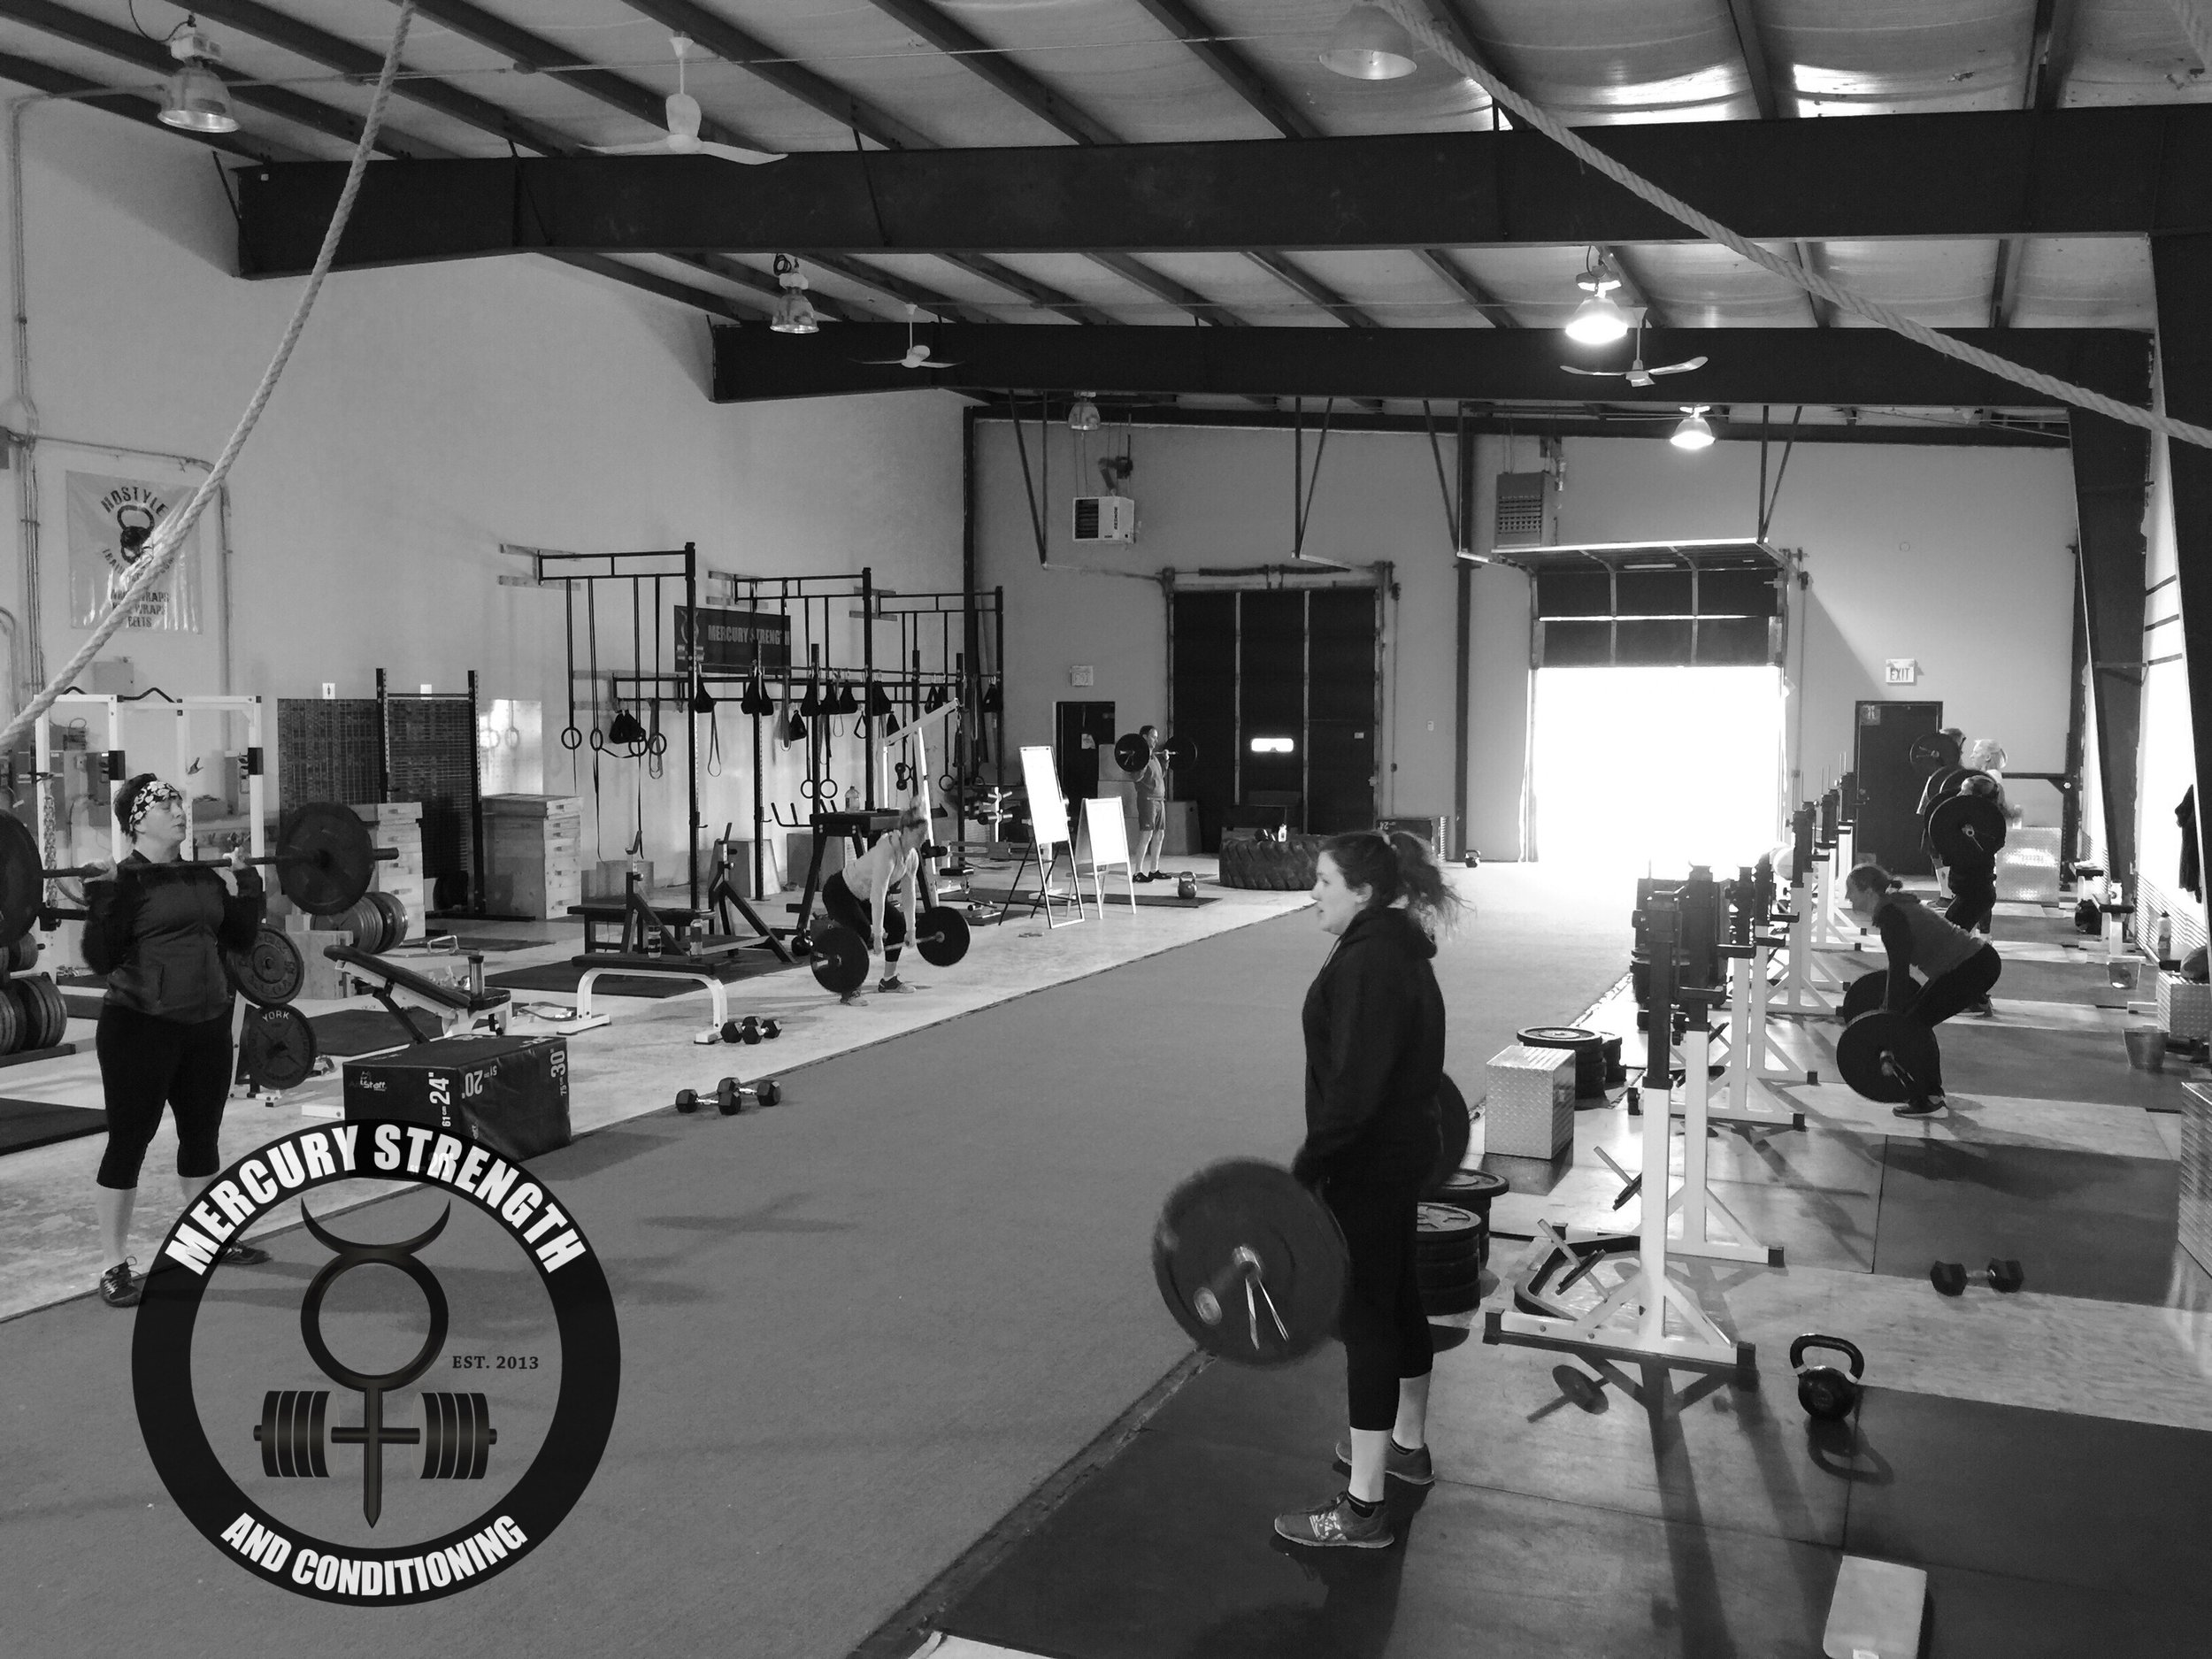 Gym-powerlifting-fitness-training-bootcamp-crossfit-kingston-kids-mercury-strength-conditioning-athlete-power clean